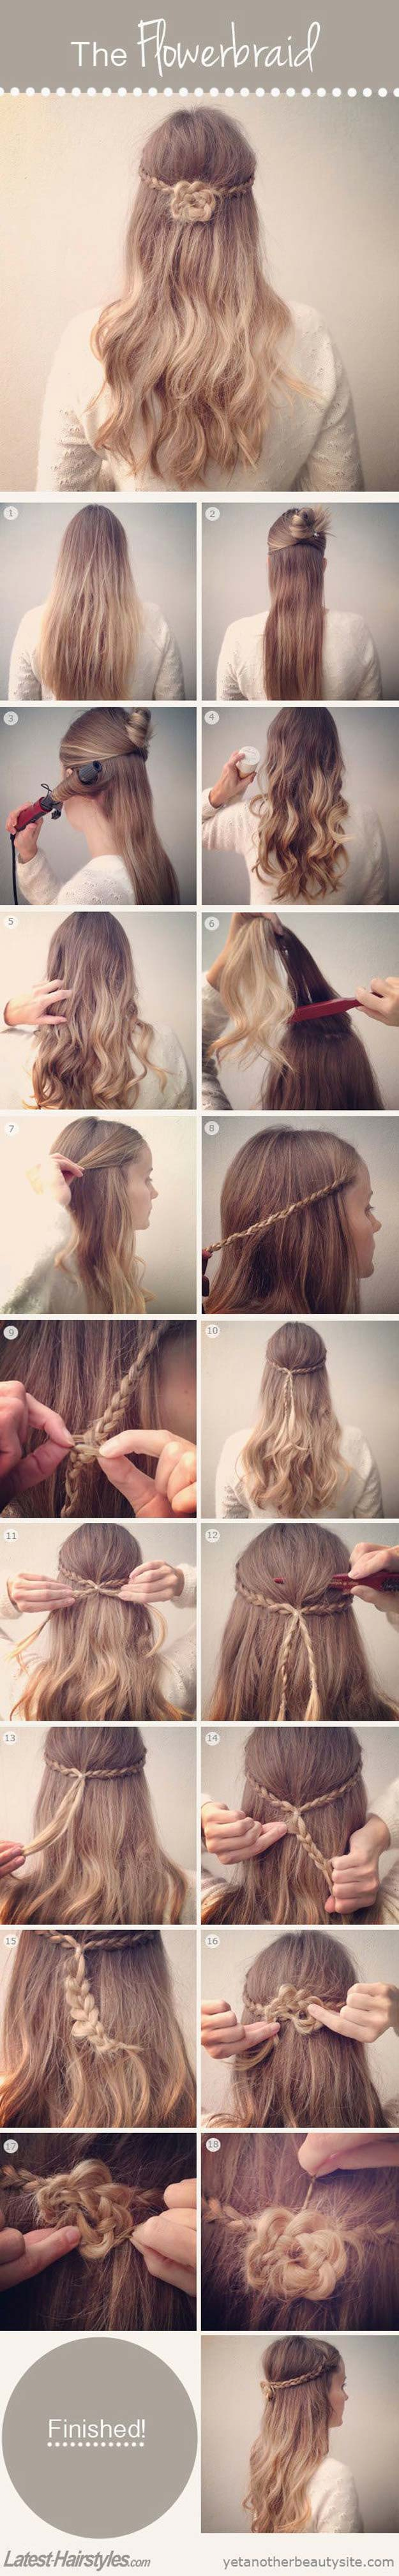 Best Hair Braiding Tutorials - How to Braid Your Hair Into a Pretty Flower - Easy Step by Step Tutorials for Braids - How To Braid Fishtail, French Braids, Flower Crown, Side Braids, Cornrows, Updos - Cool Braided Hairstyles for Girls, Teens and Women - School, Day and Evening, Boho, Casual and Formal Looks #hairstyles #braiding #braidingtutorials #diyhair